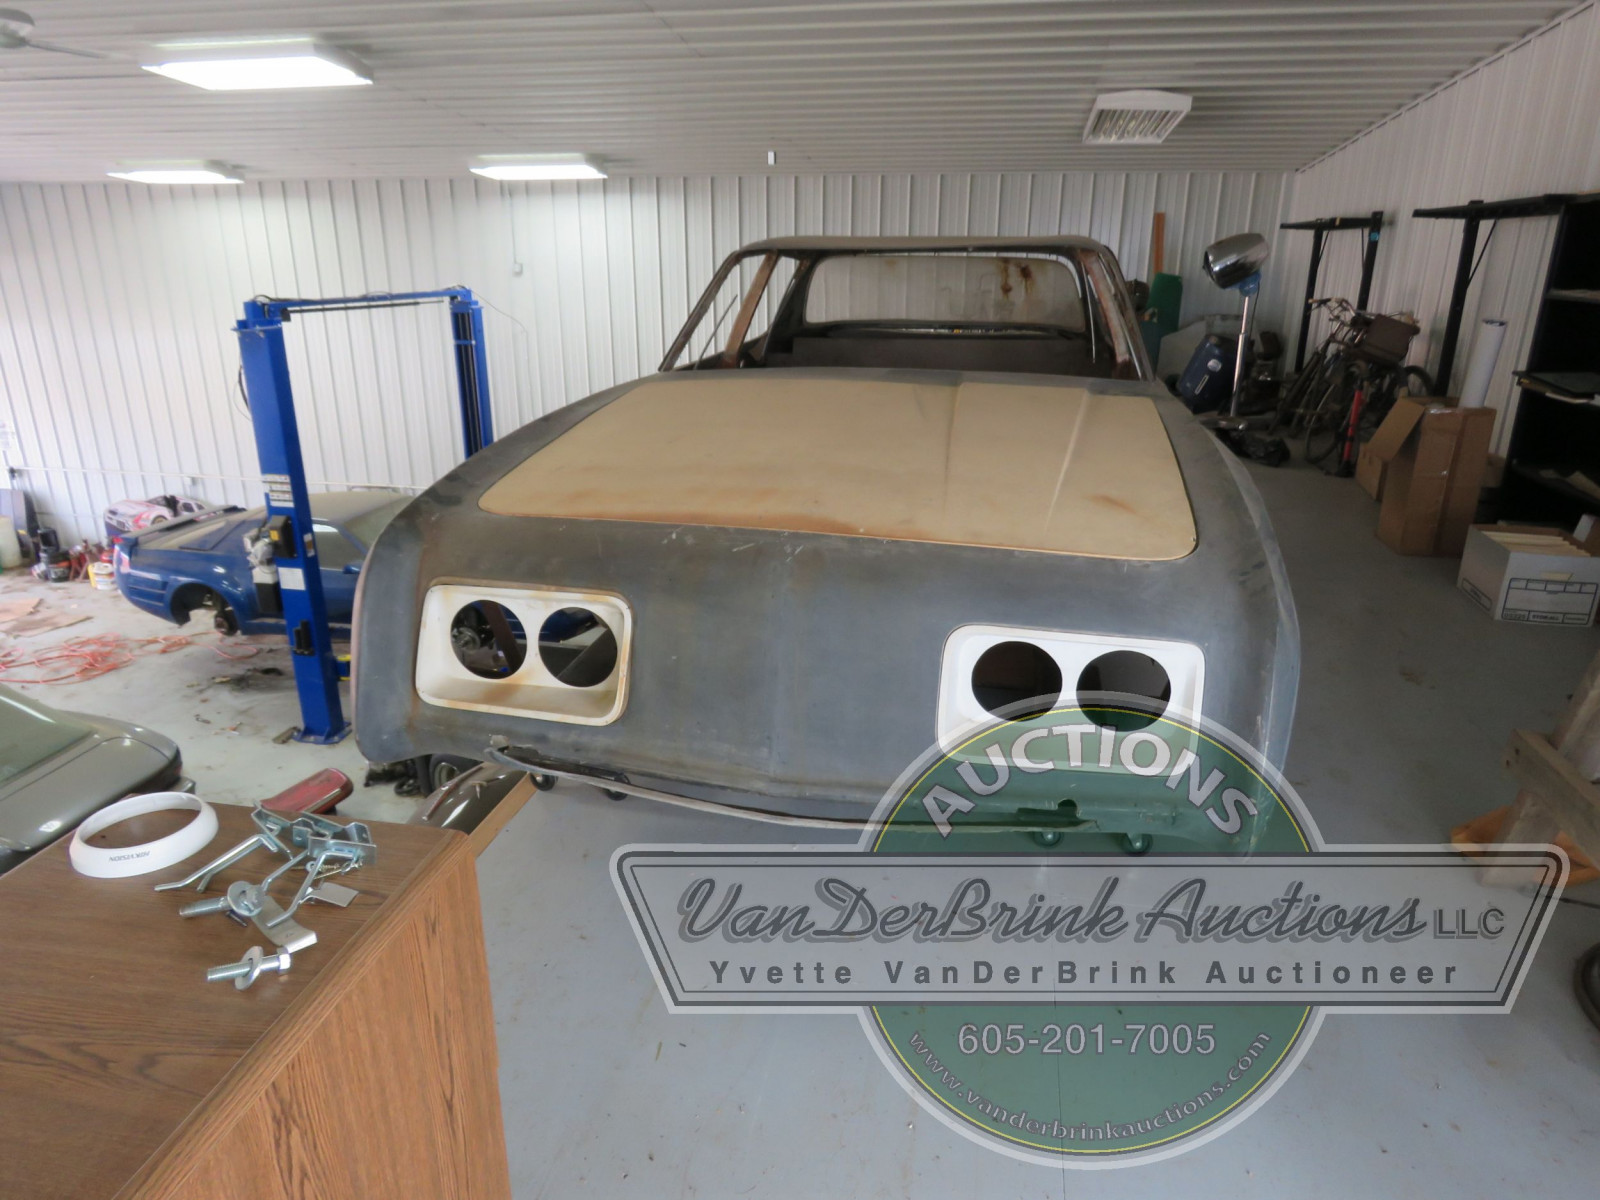 Rare Studebaker Avanti Prototype 4dr Engineering Body - Image 3